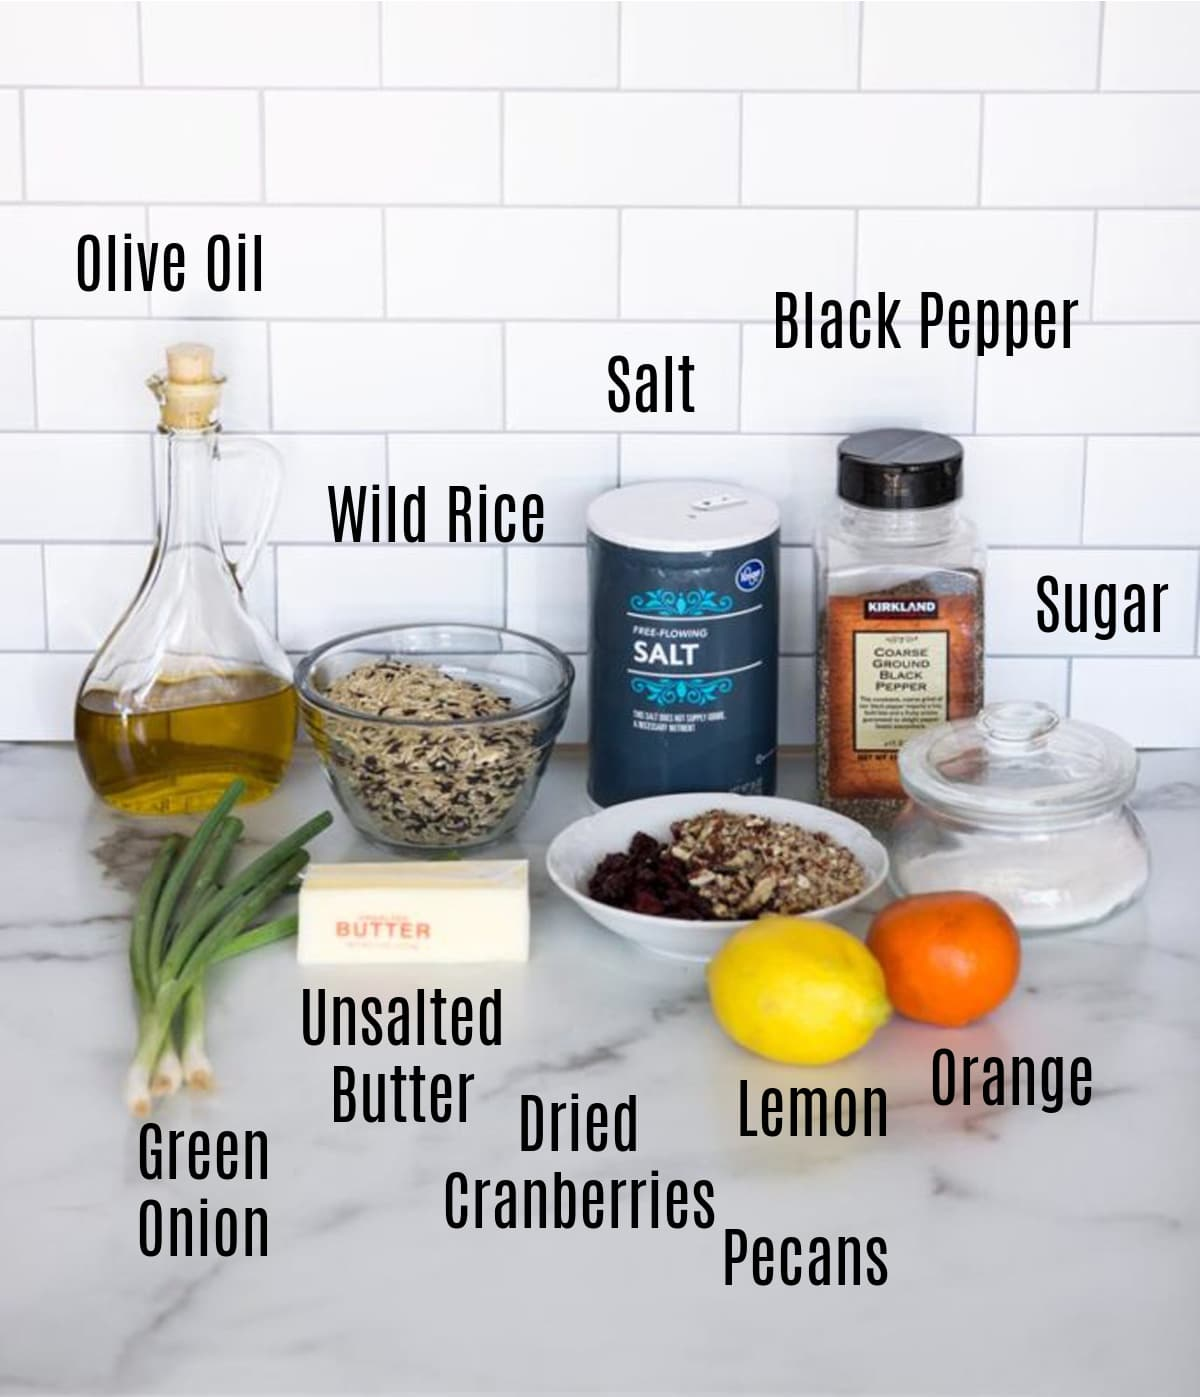 olive oil, rice, citrus vinaigrette dressing ingredients, pecans, and scallions on a counter.